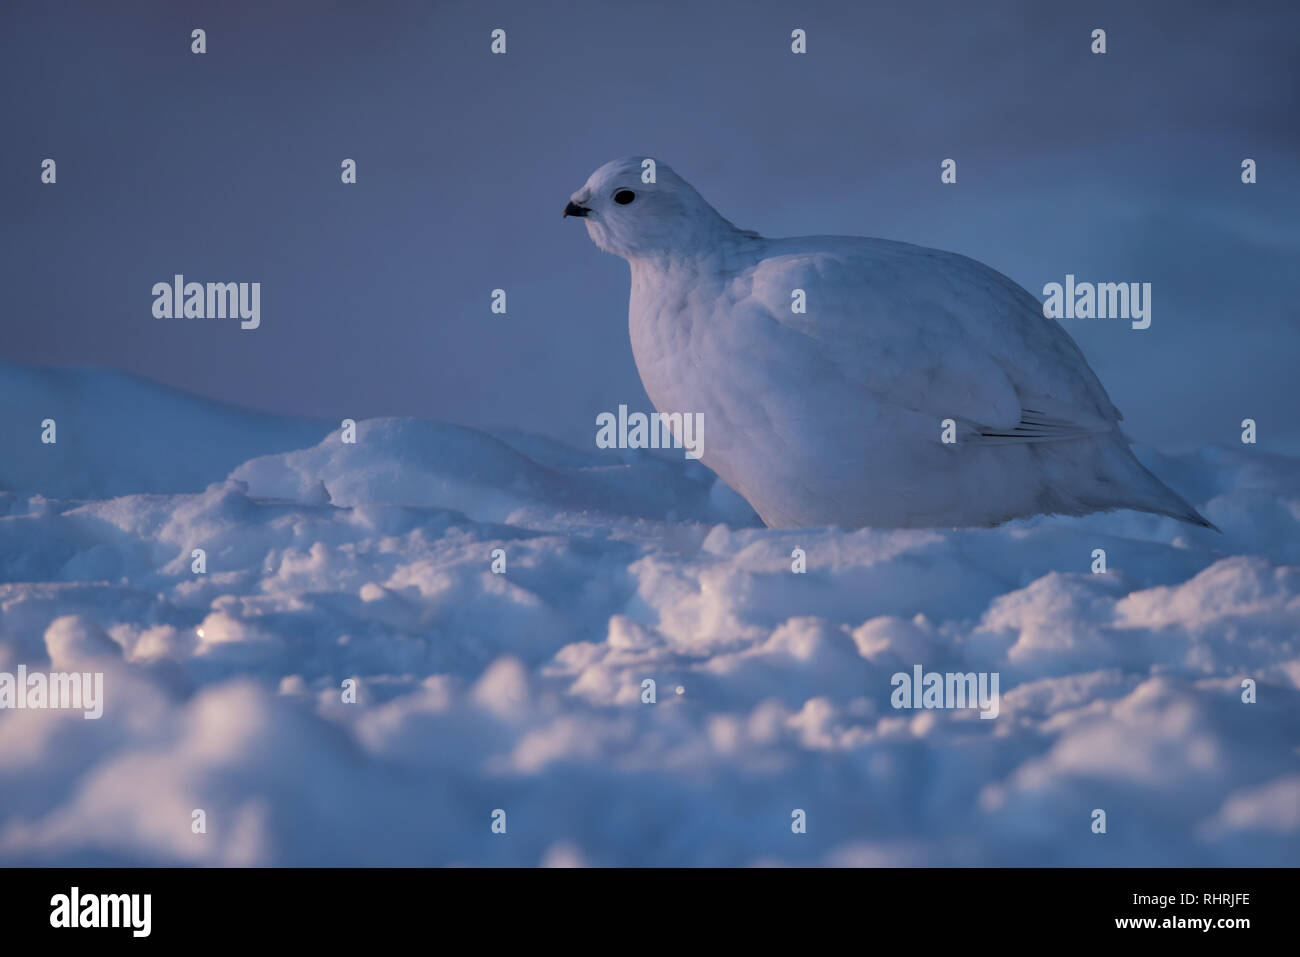 A Willow Ptarmigan catches the last dim rays of the setting arctic sun in Yellowknife, Northwest Territories, Canada. - Stock Image